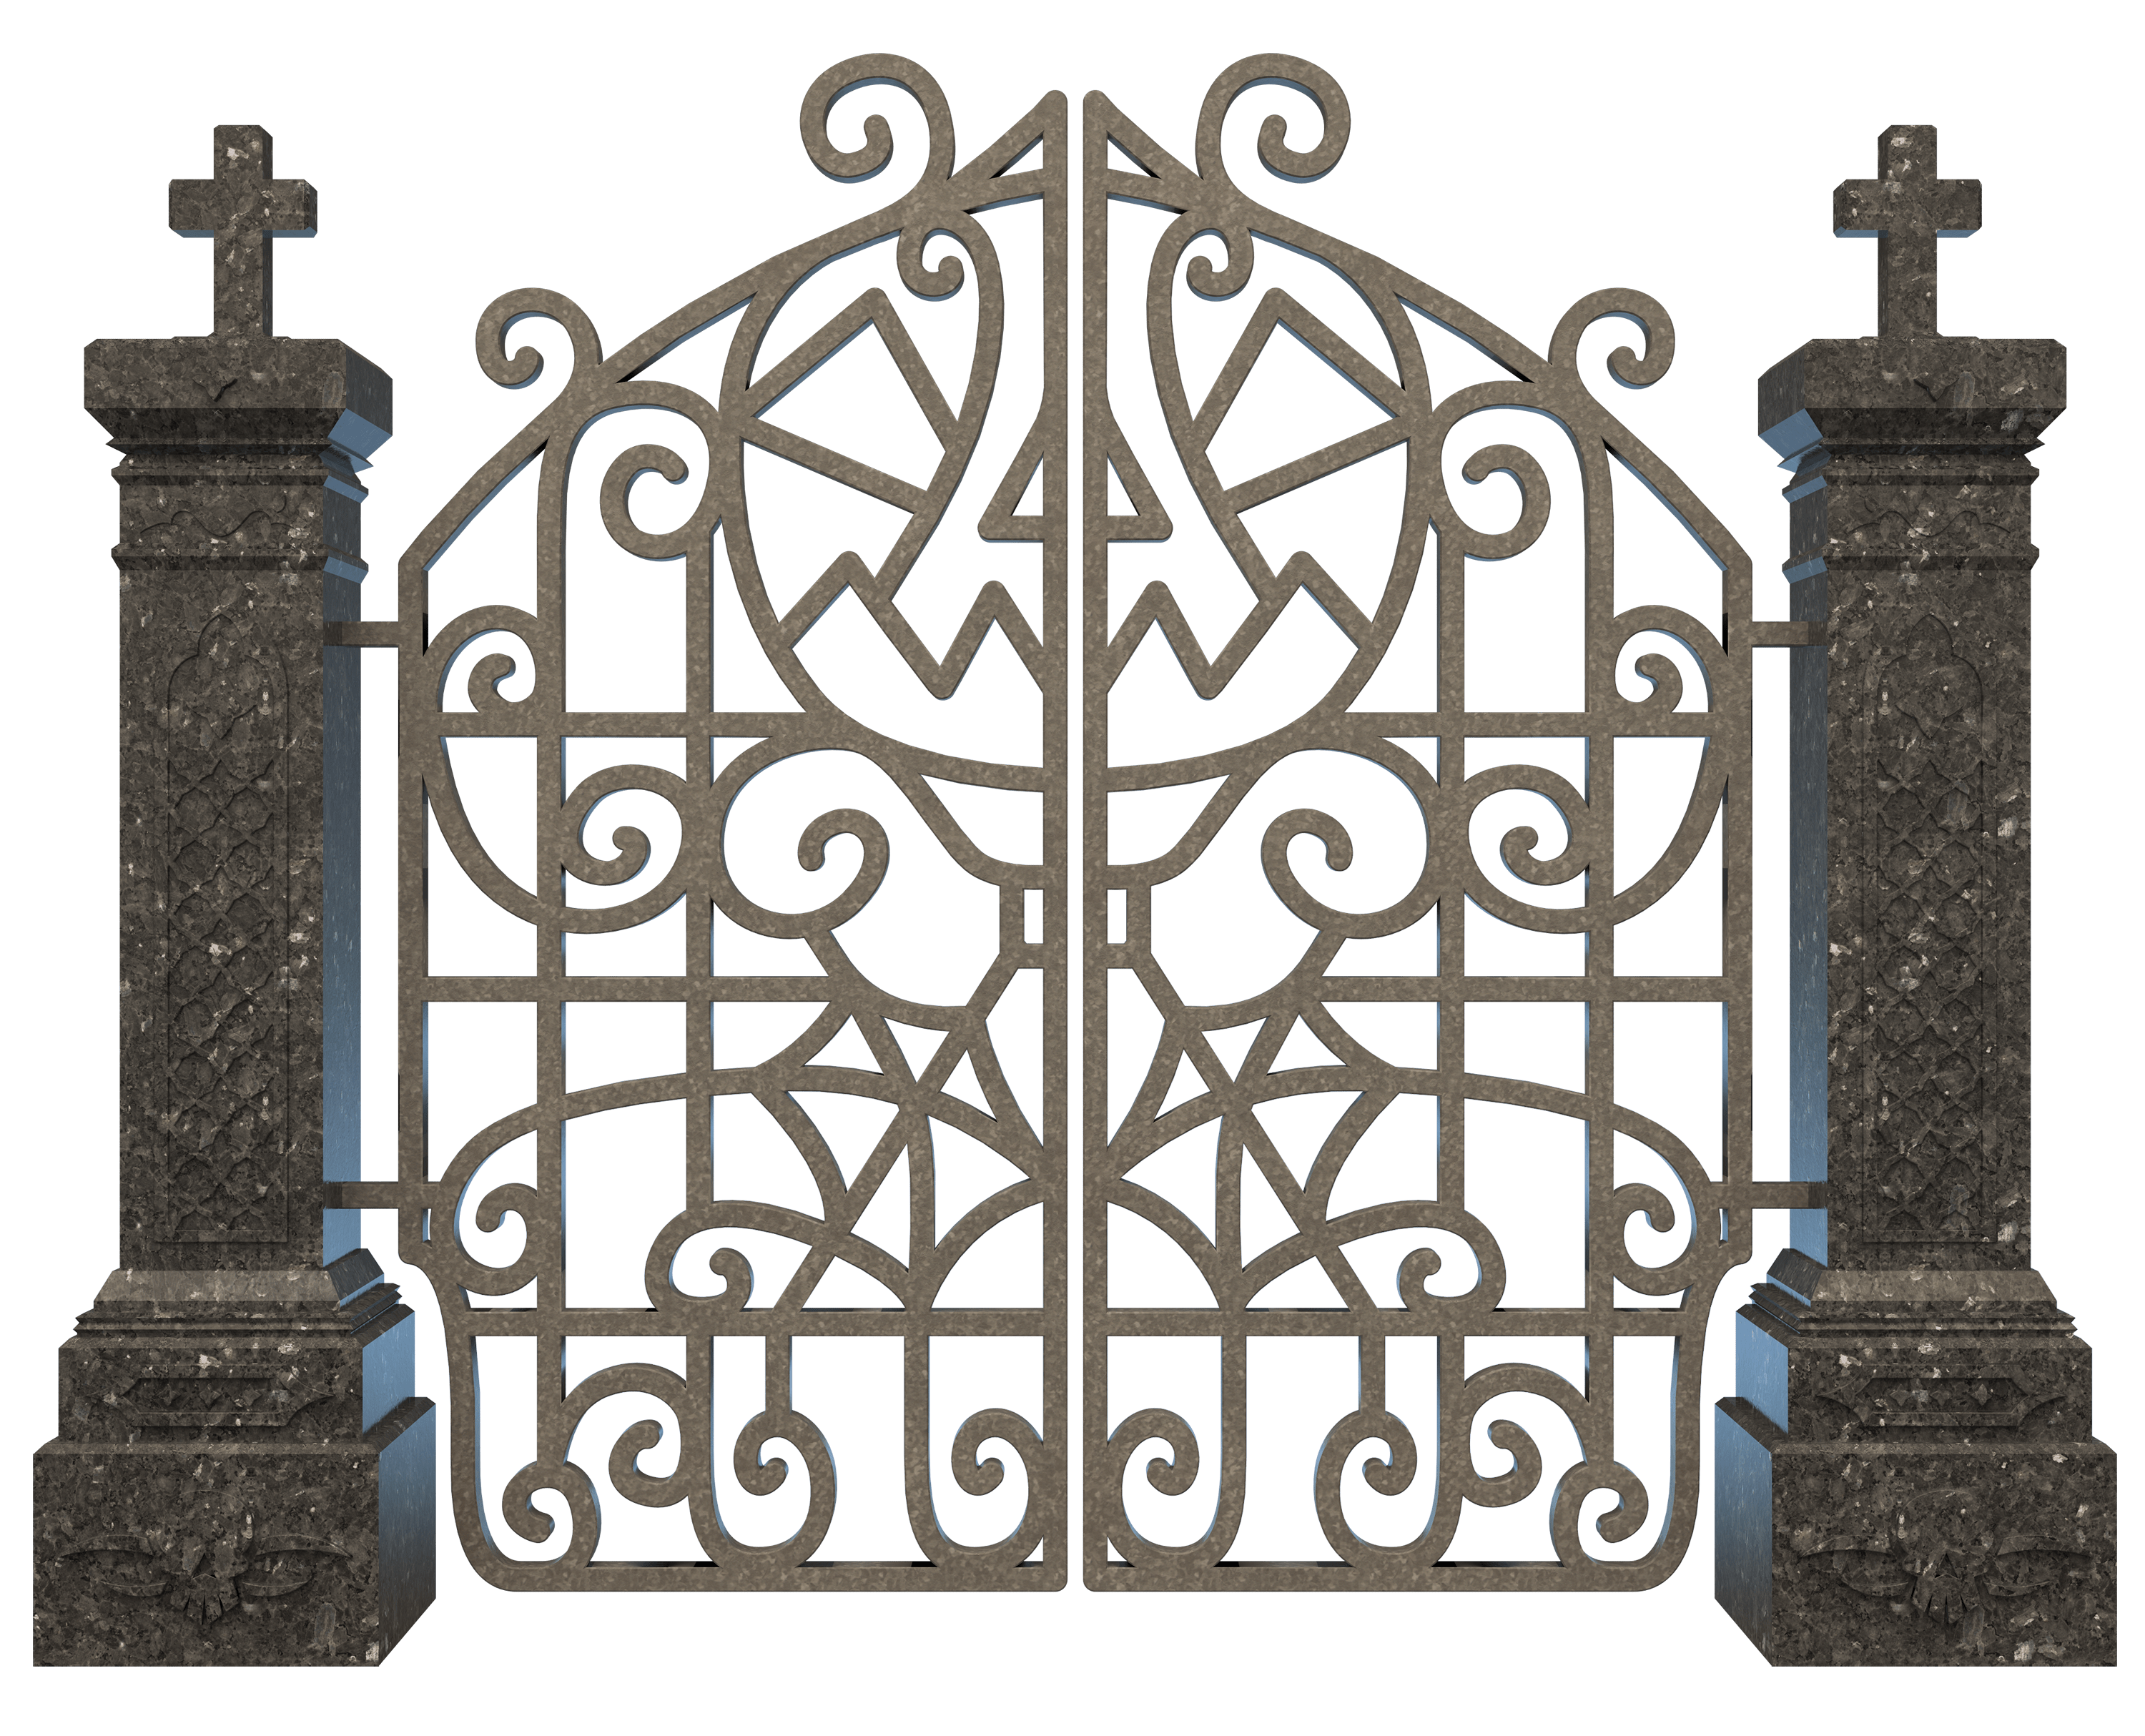 Iron gate png. Cemetery transparent stickpng graveyard